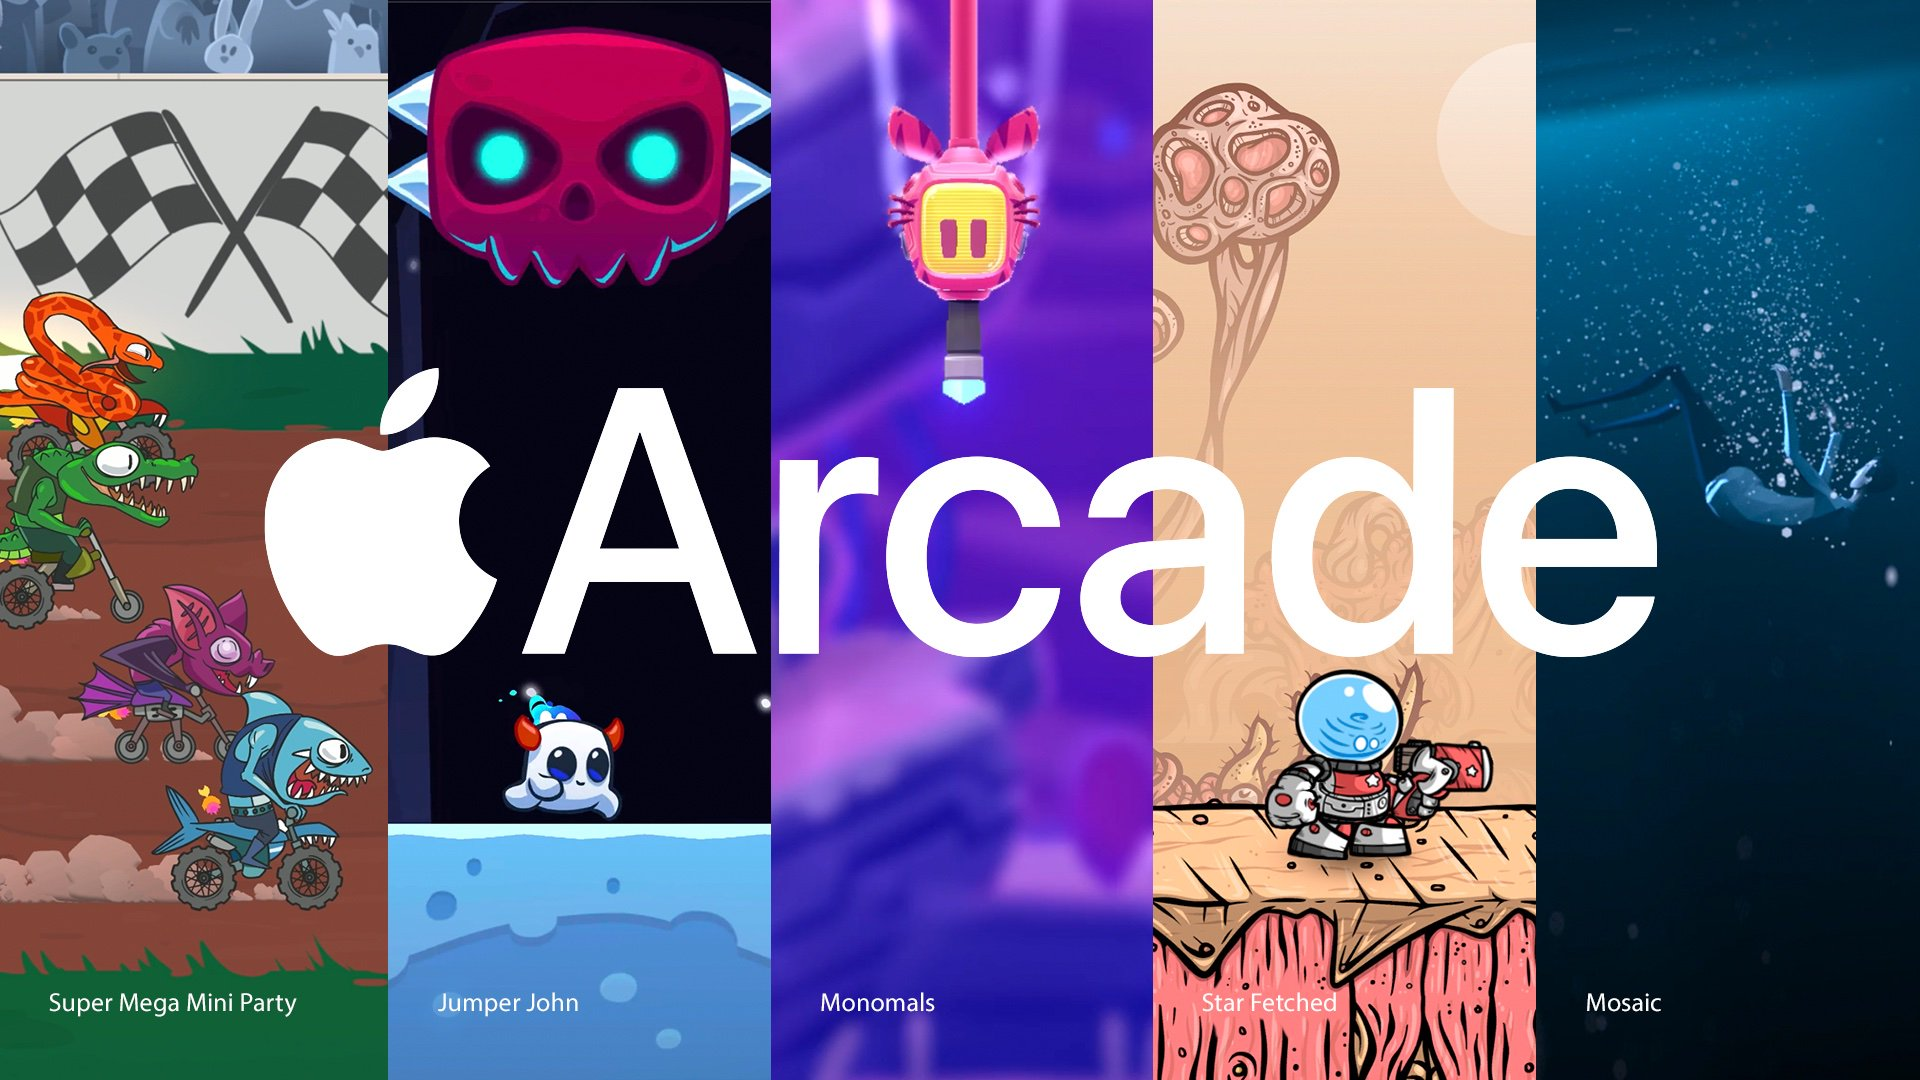 New Apple Arcade Game Releases: 'Jumper Jon', 'Monomals', 'Star Fetched', Super Mega Mini Party', and 'The Mosaic'